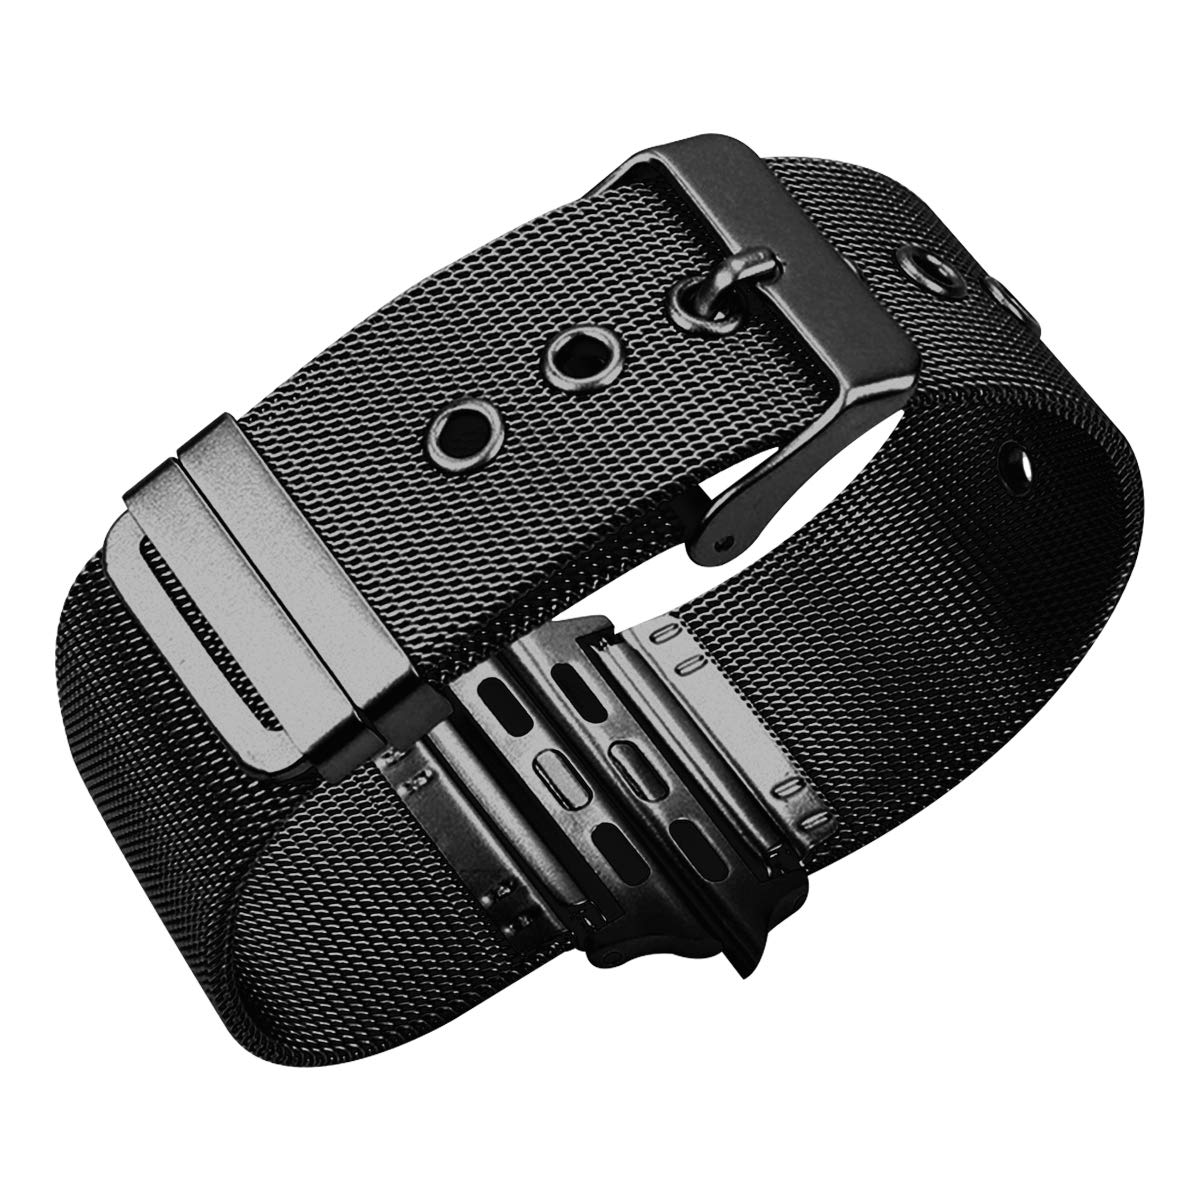 42mm Watch Band for iwatch Strap Black Stainless Steel Watch Band Replacement